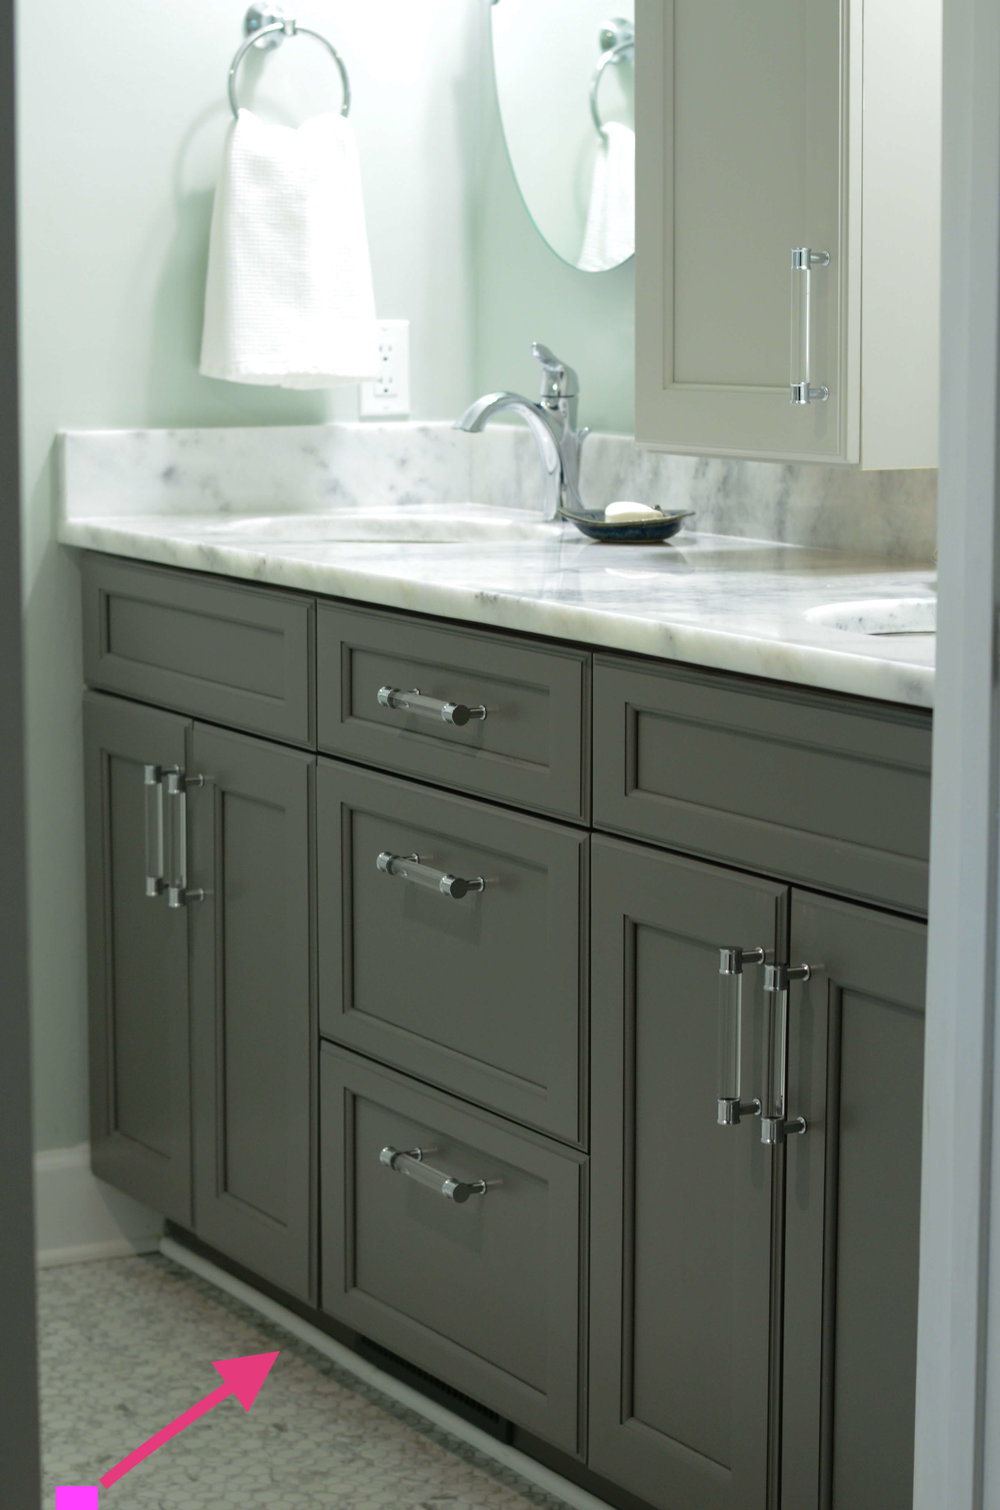 Gray_bathroom_cabinets copy.jpeg